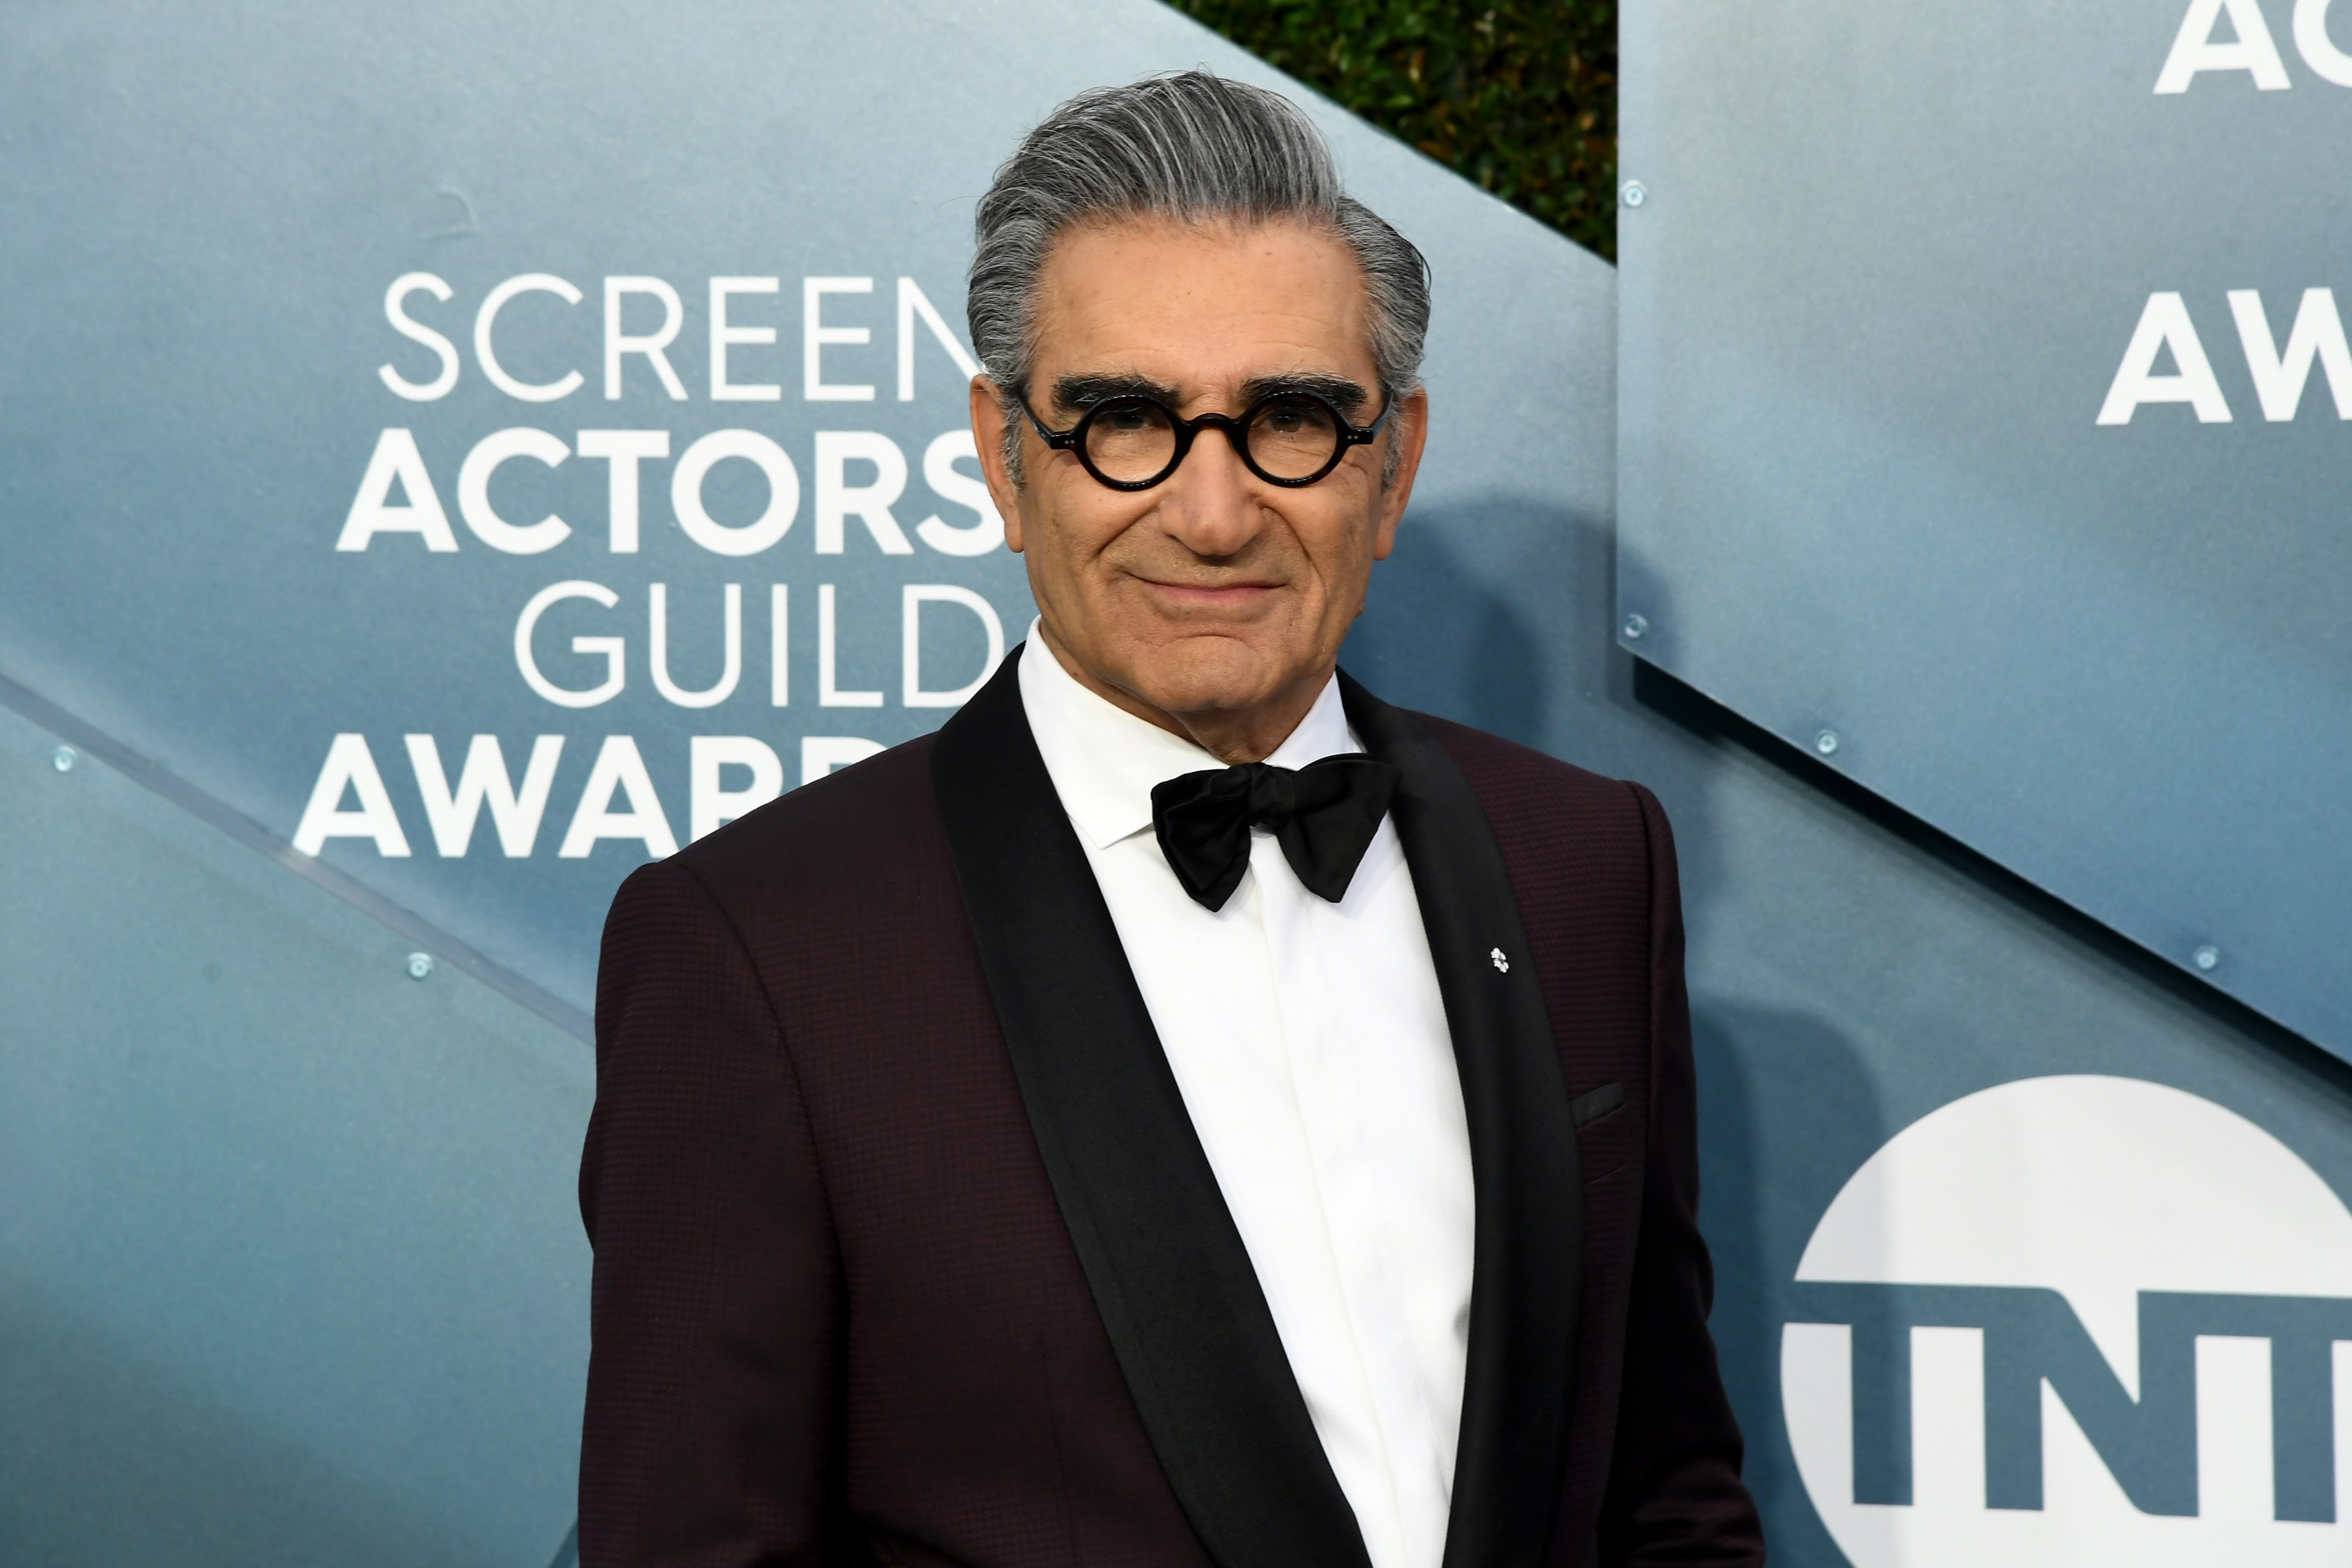 Eugene Levy attends the Screen Actors Guild Awards | Photo: Getty Images